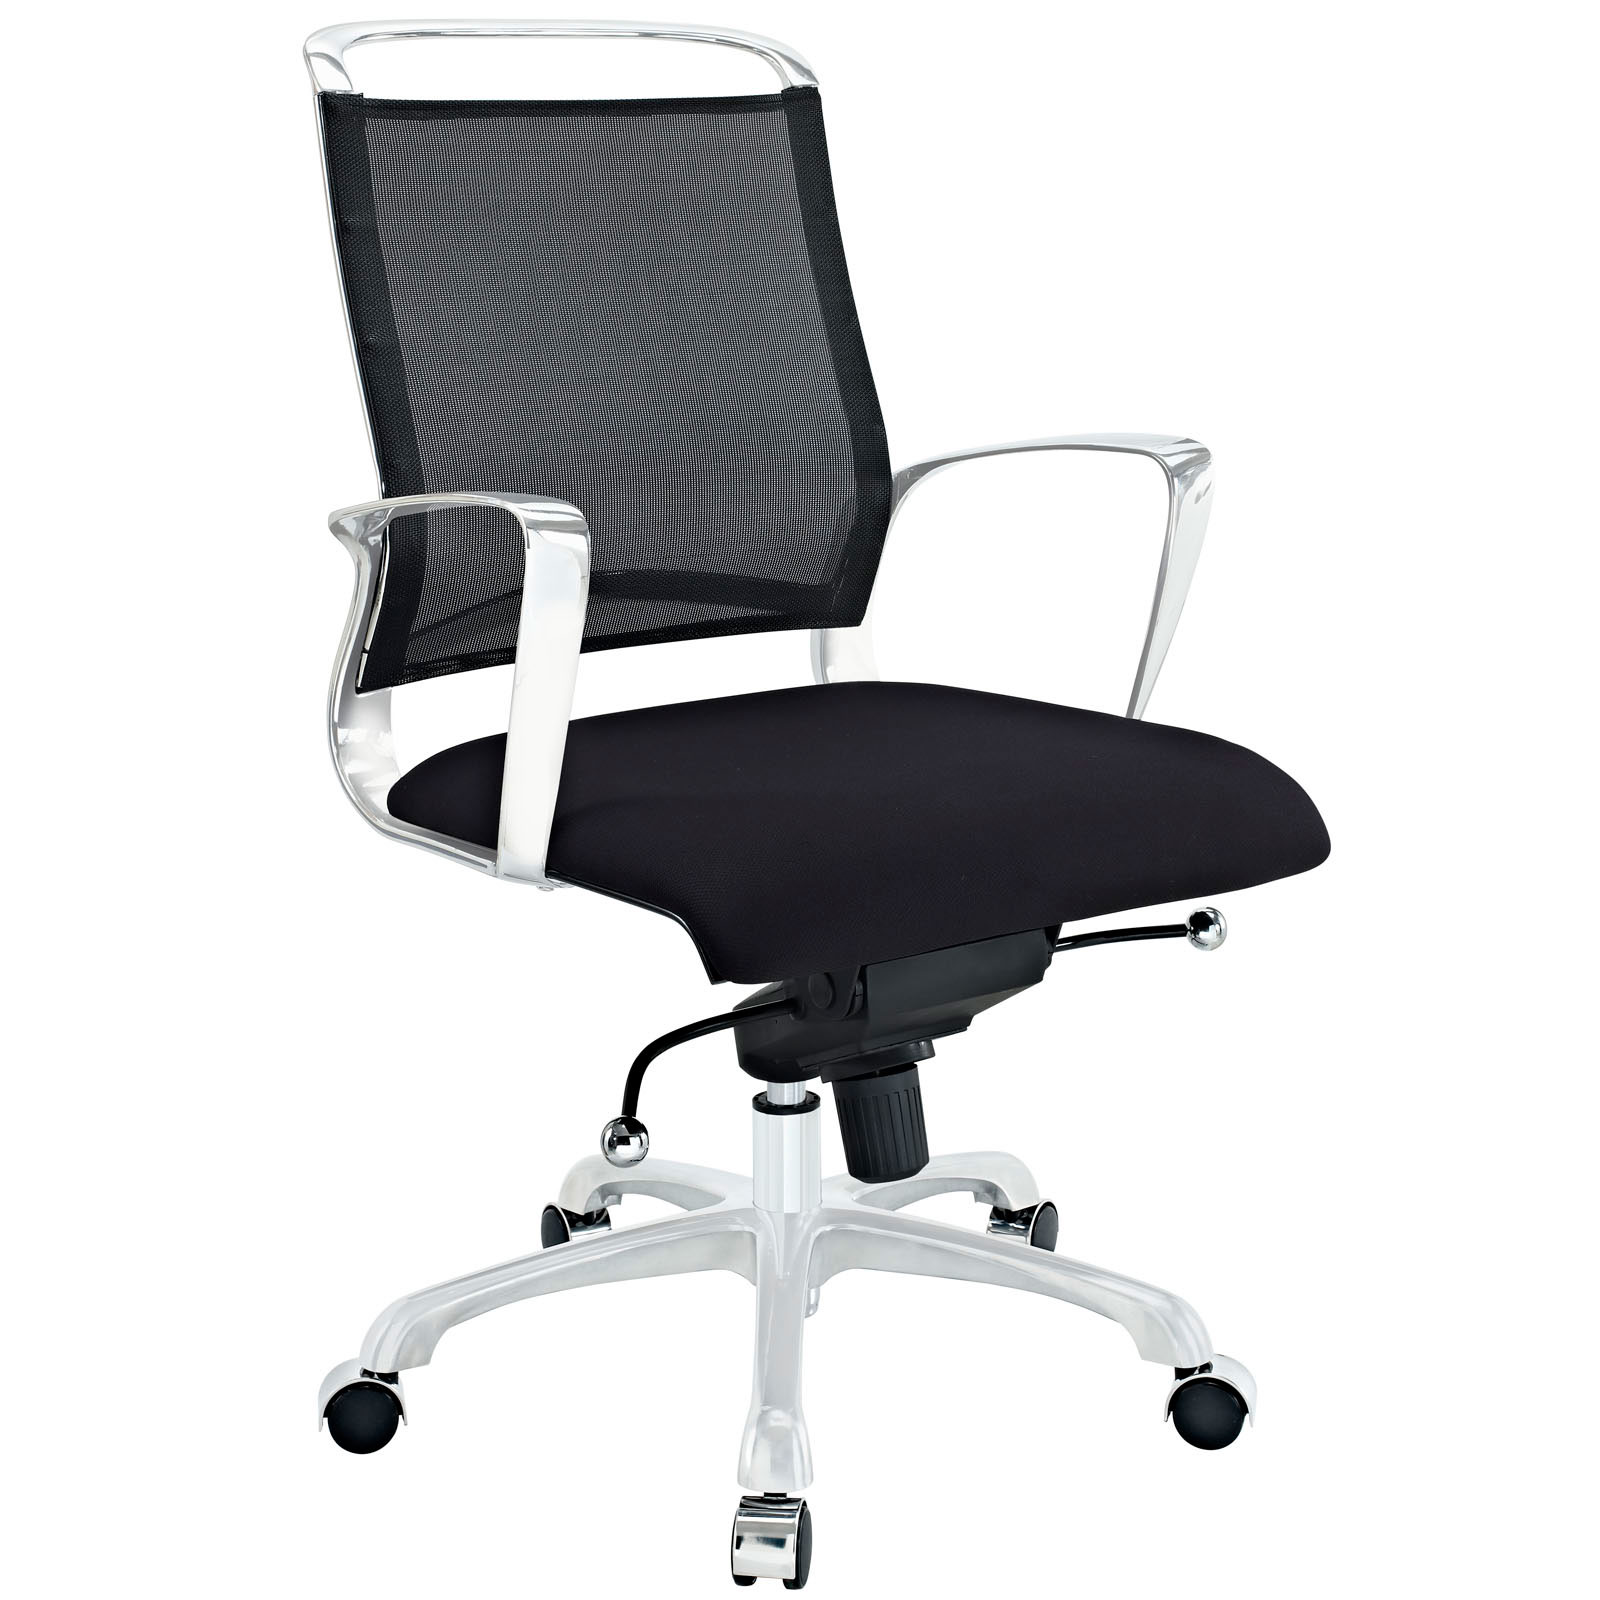 chic Solaris Office Chair in black and white by eurway furniture for home office furniture ideas